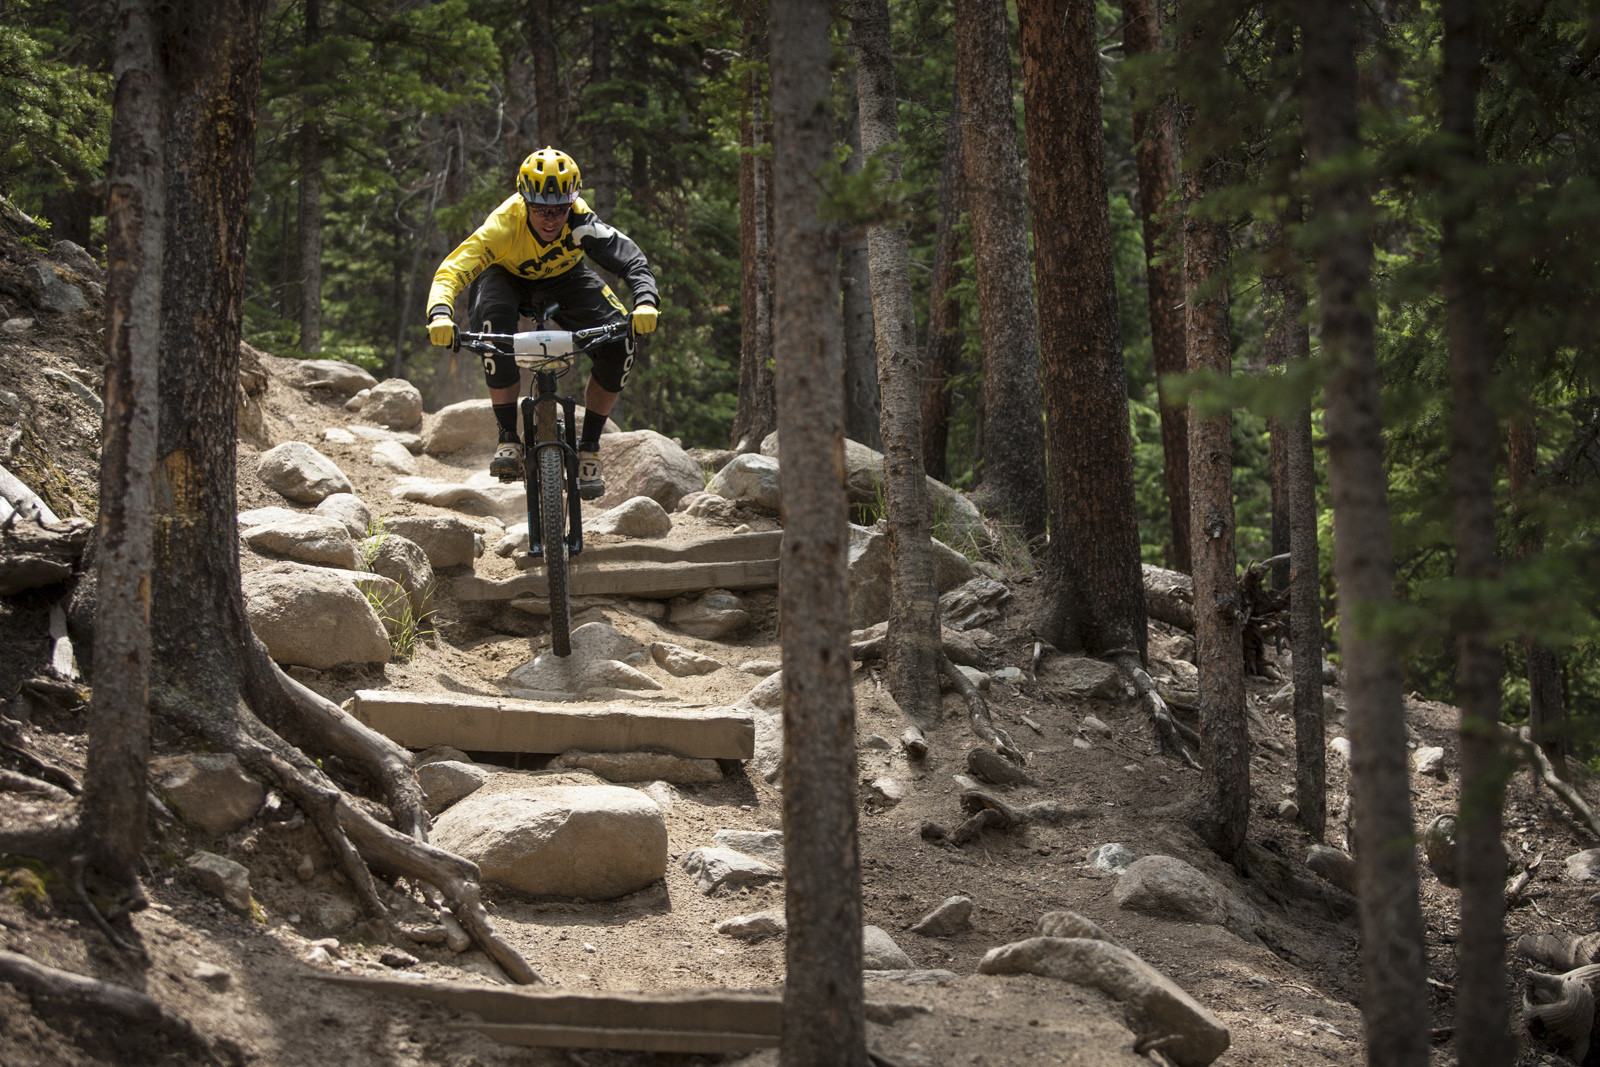 Nate Hills, 3rd Place at the Keystone Big Mountain Enduro - Photos, Videos from the Keystone Big Mountain Enduro, Part of the North American Enduro Tour - Mountain Biking Pictures - Vital MTB